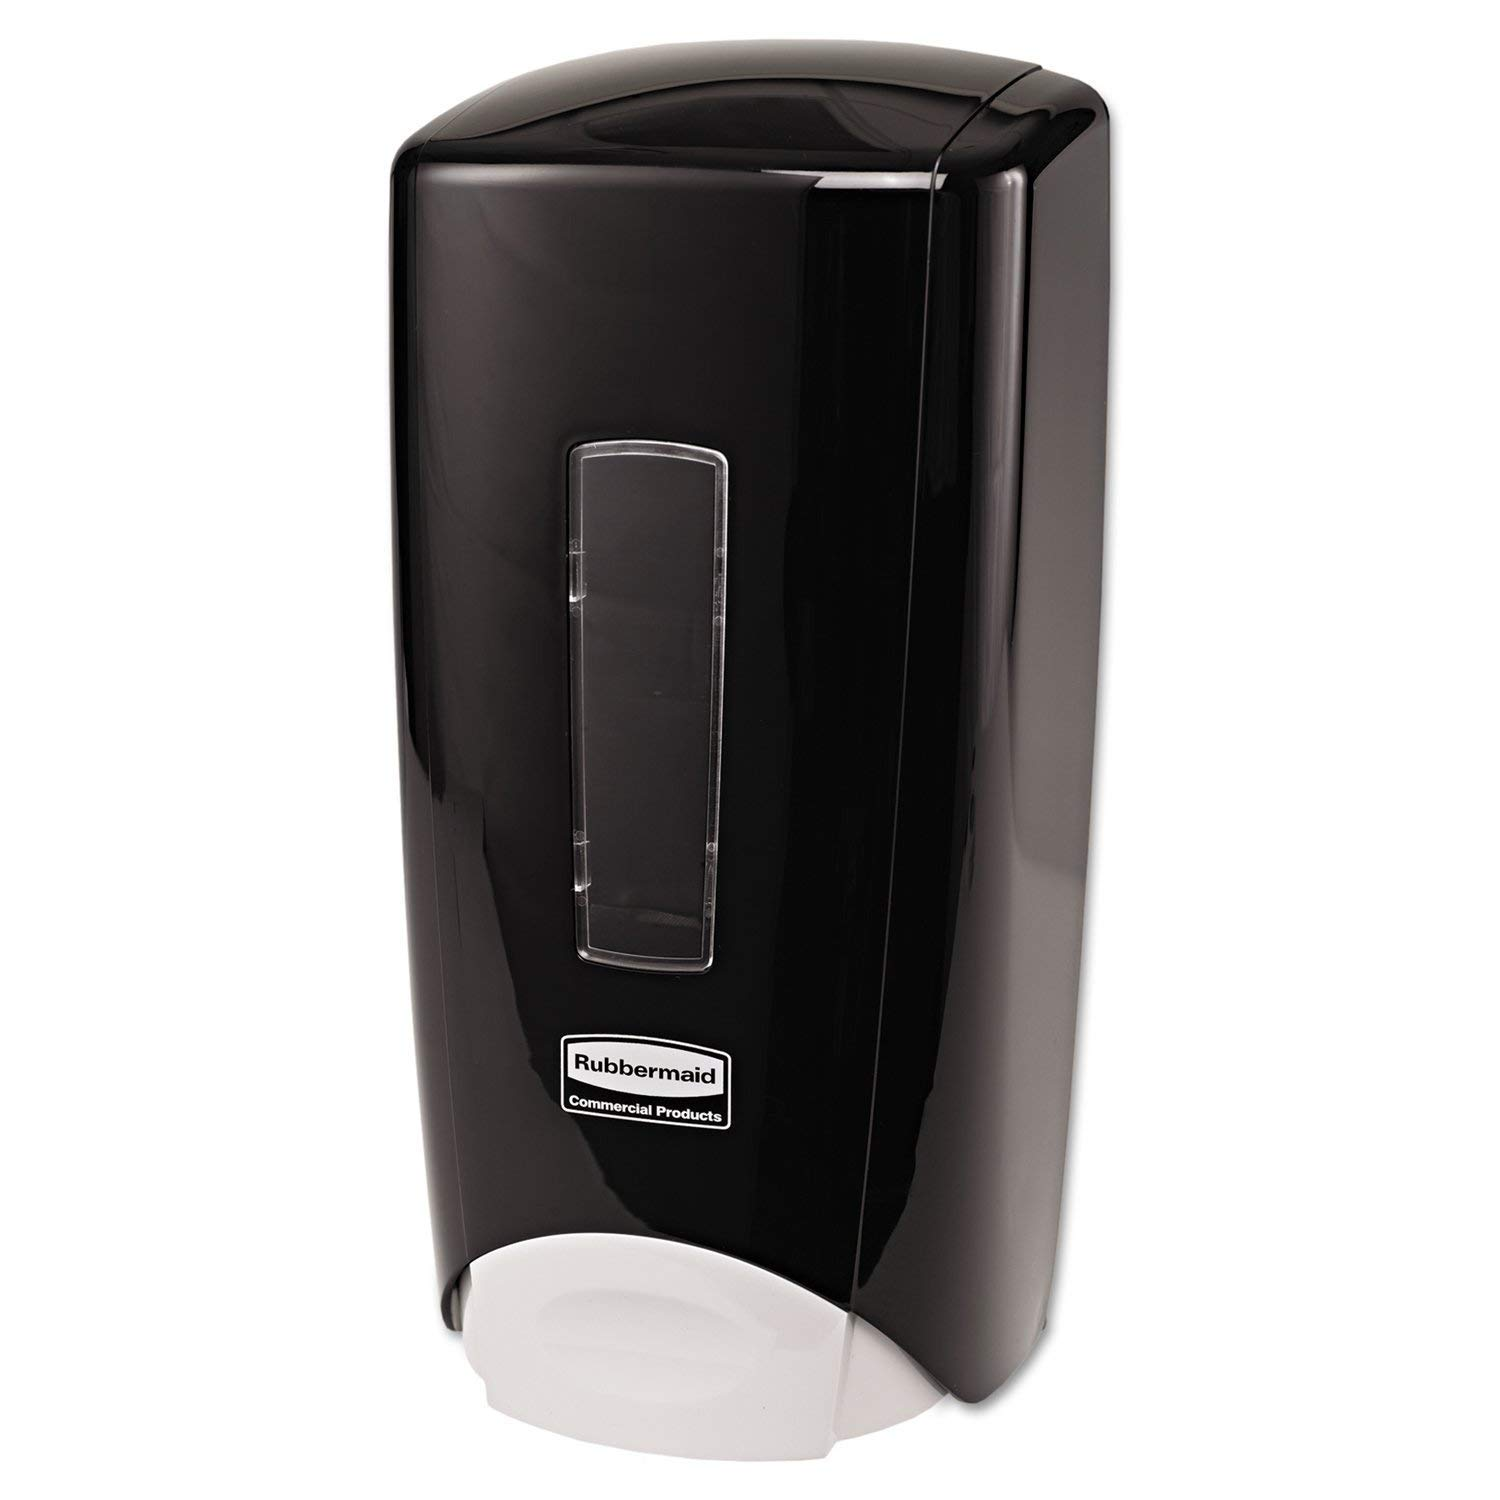 Rubbermaid Commercial 3486592 Flex Wall-Mounted Manual Skin Care Dispenser, Black, 1000- to 1300 mL